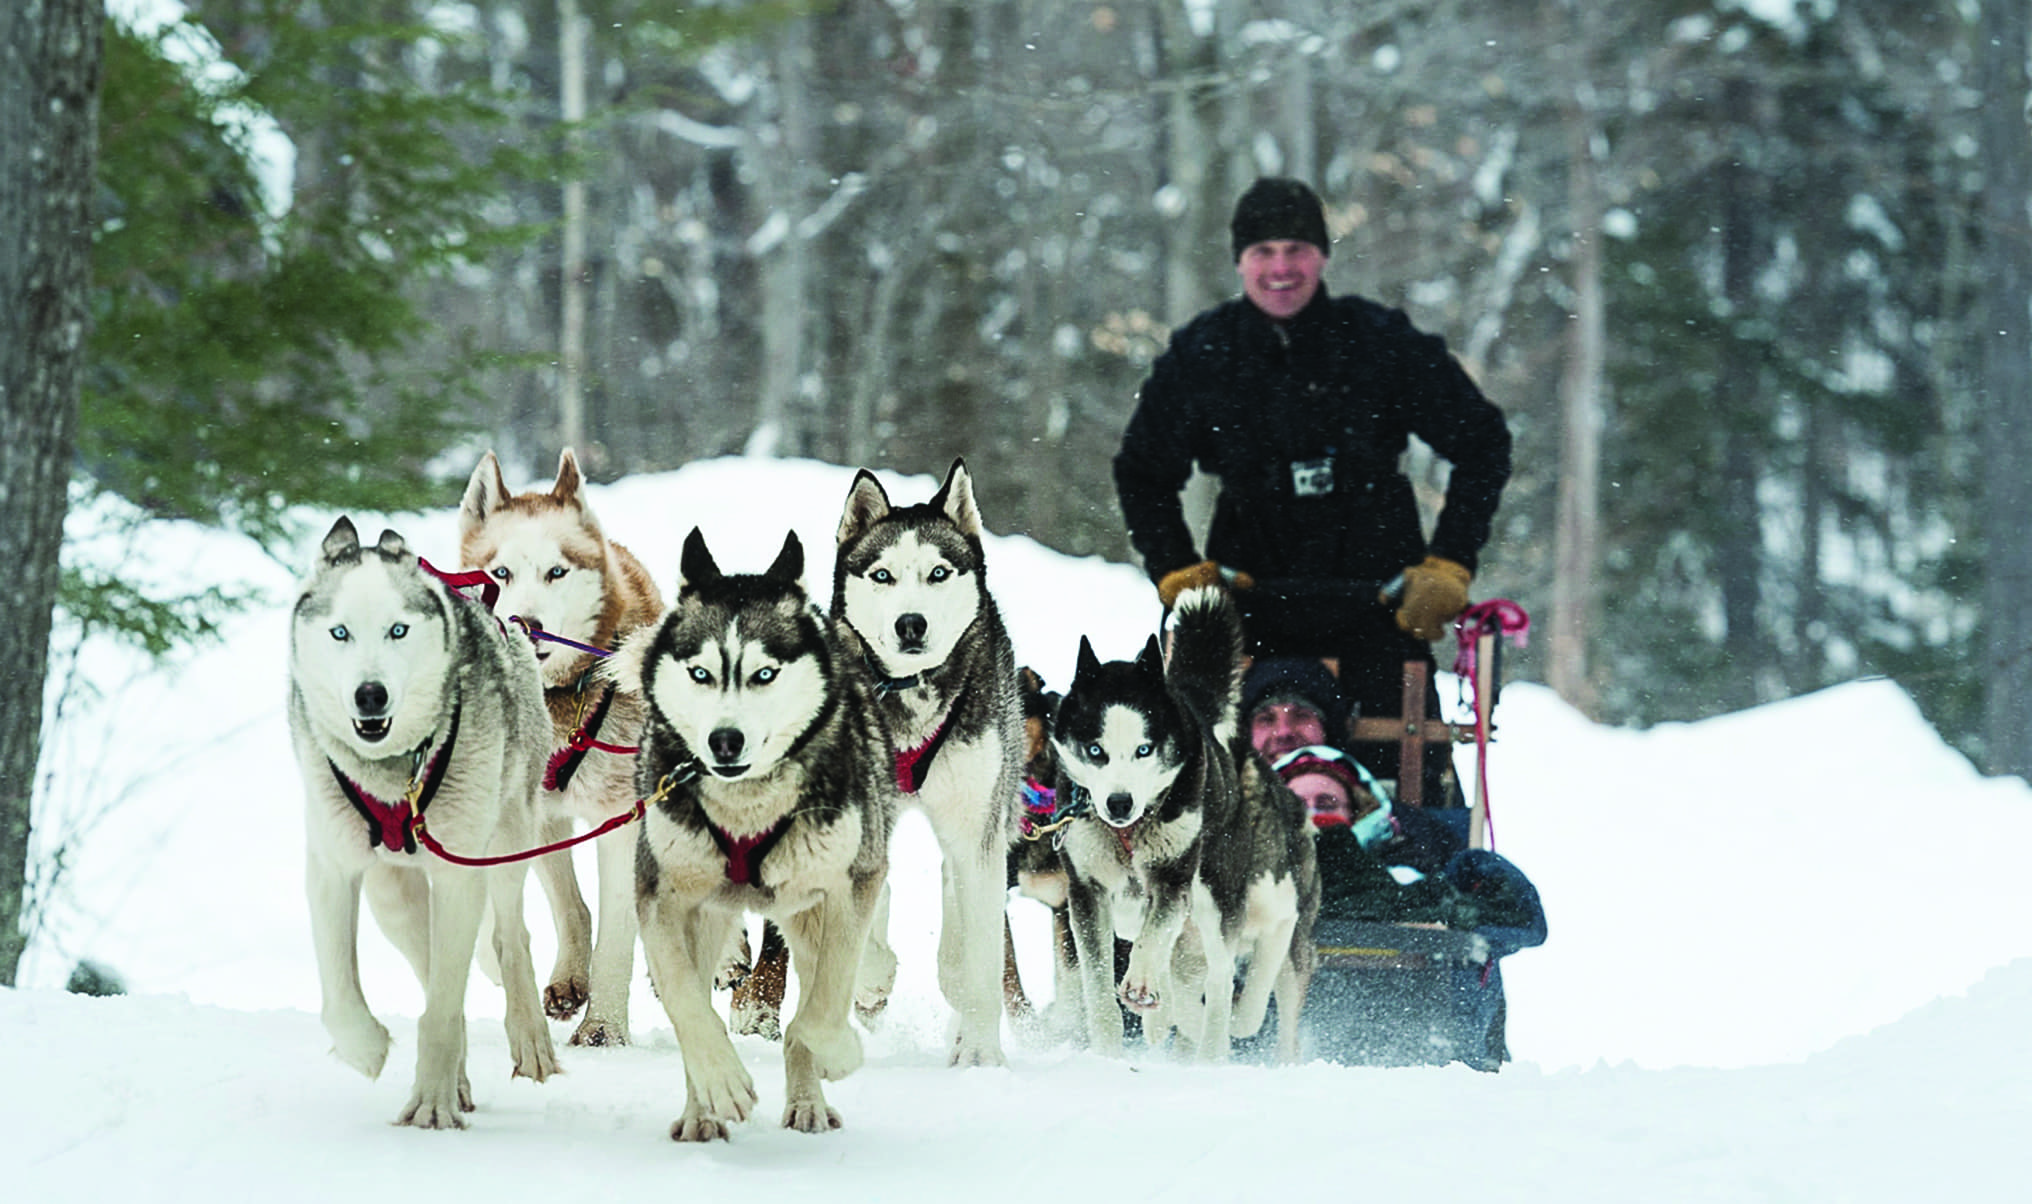 160925_dogsledding_2032x1204_4.ashx.jpeg